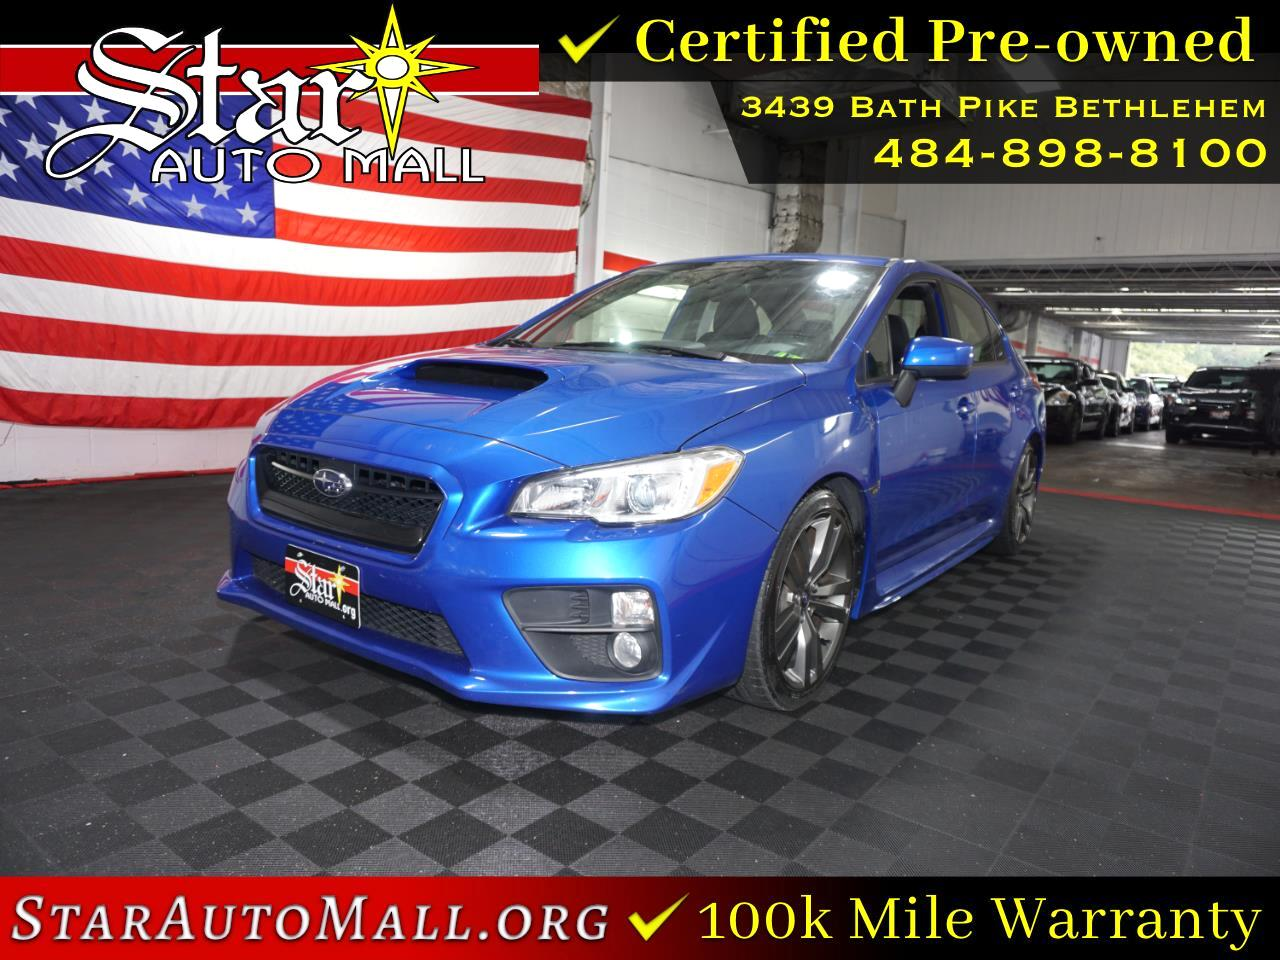 Subaru Warranty 2017 >> Used 2017 Subaru Wrx Premium For Sale In Bethlehem Pa 18017